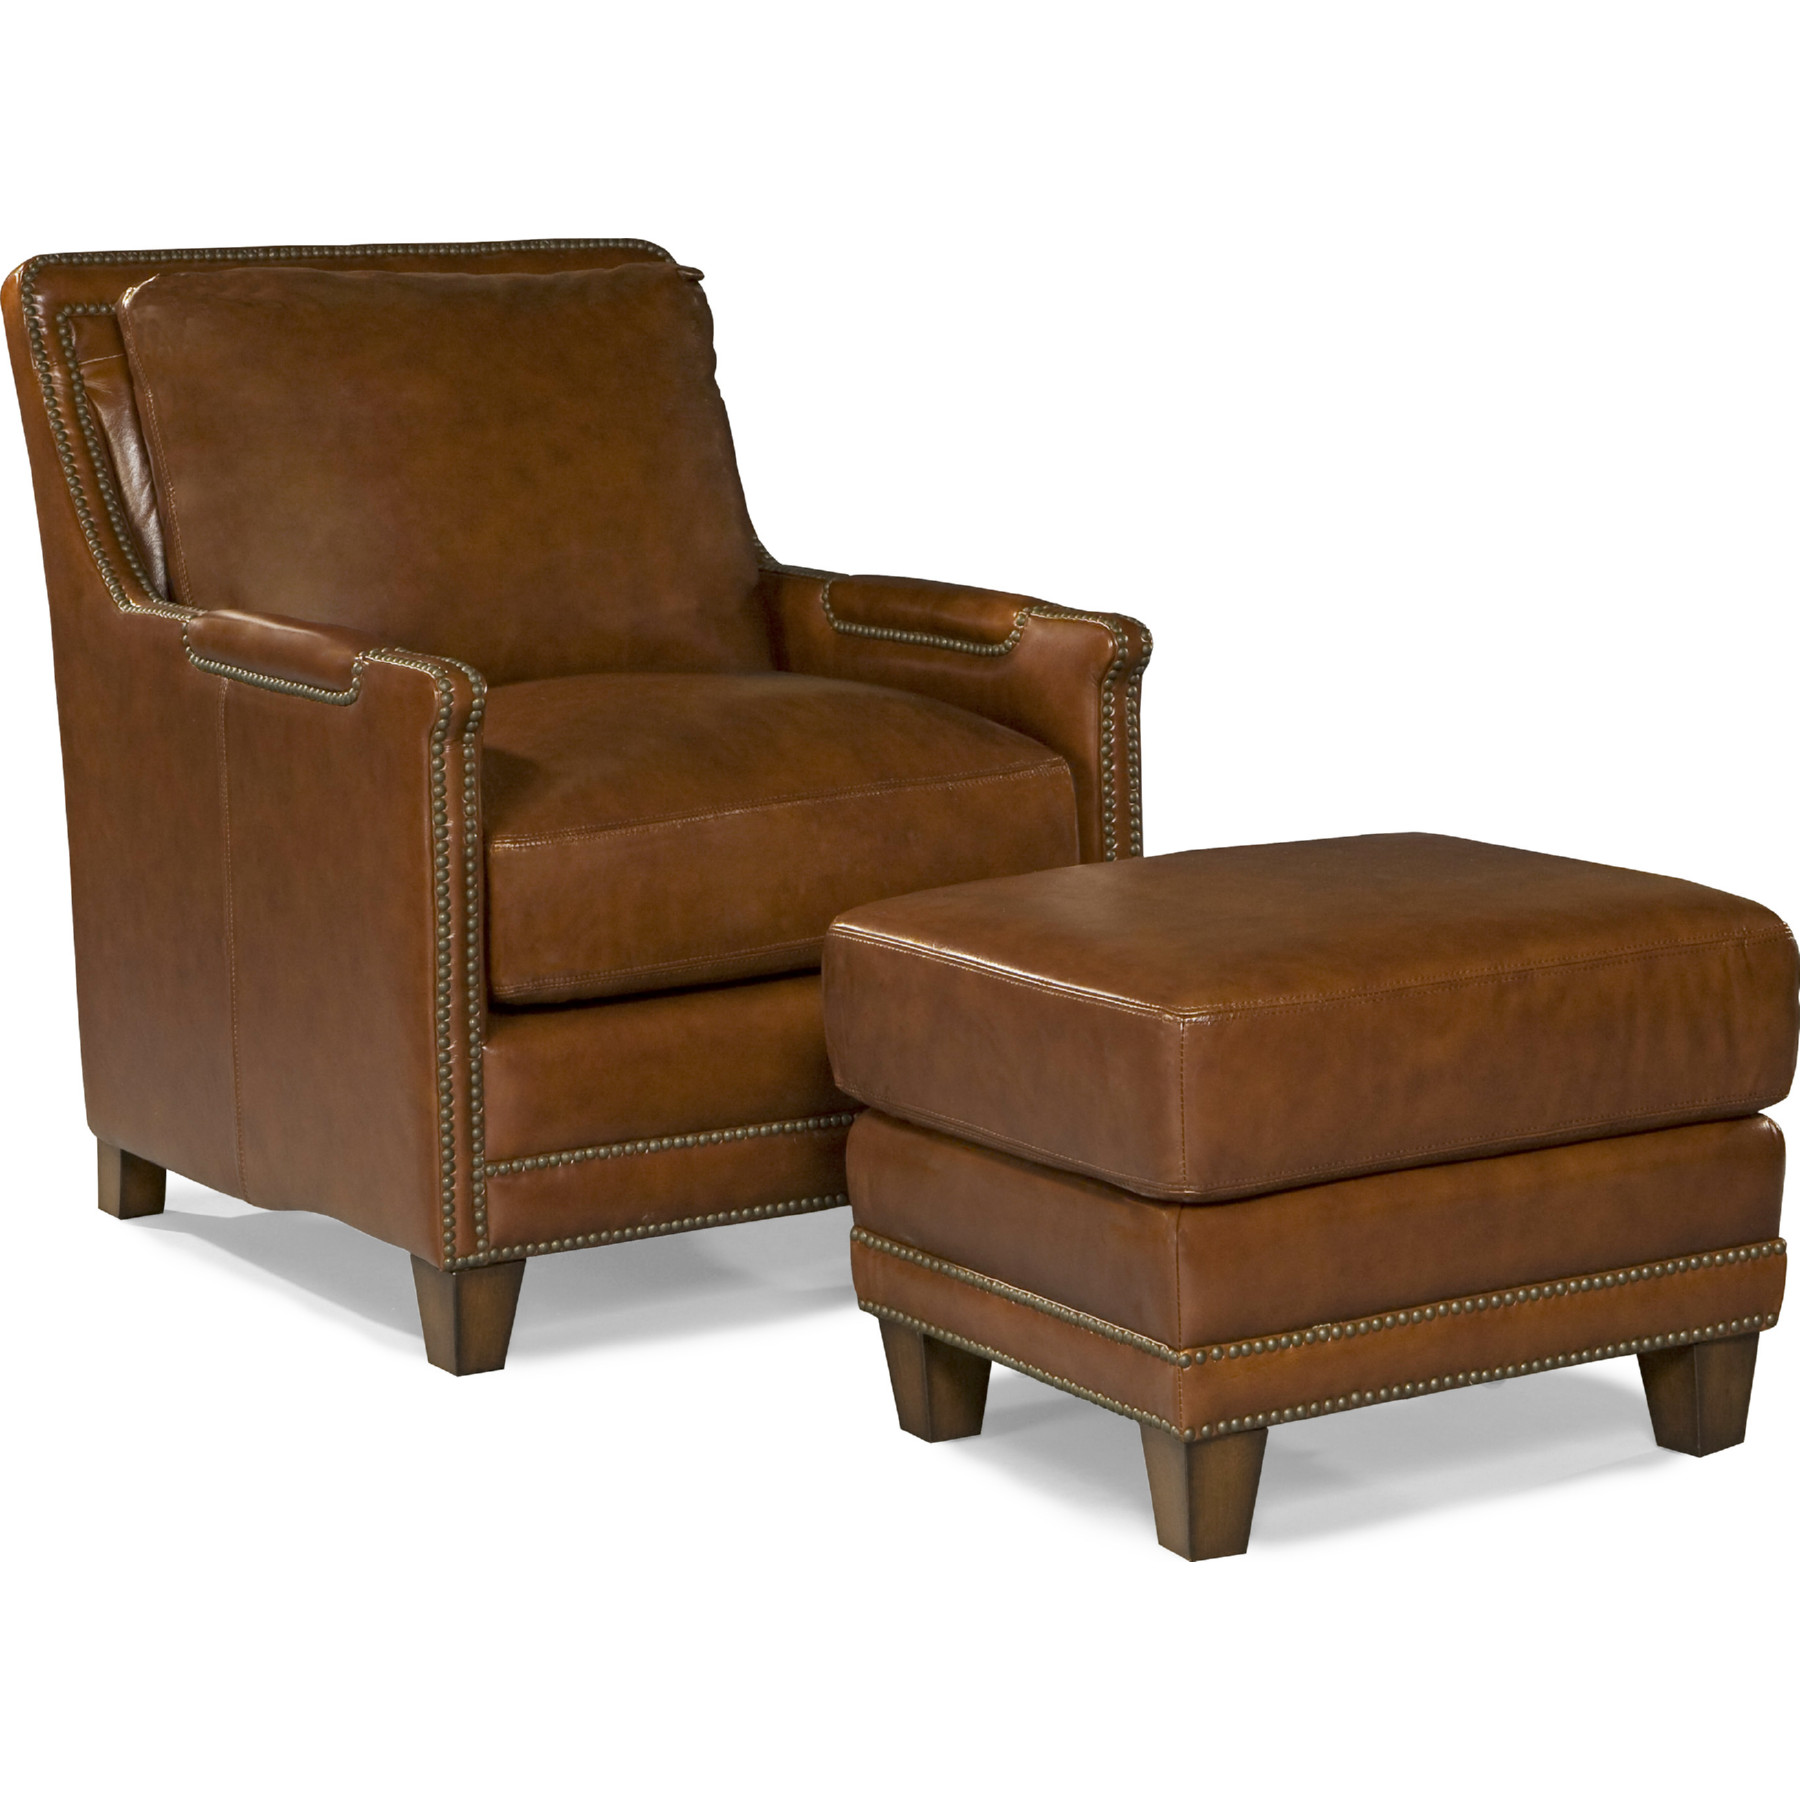 Outstanding Prescott Accent Chair In Saddle Brown Top Grain Leather By Spectra Home Furnishings Creativecarmelina Interior Chair Design Creativecarmelinacom